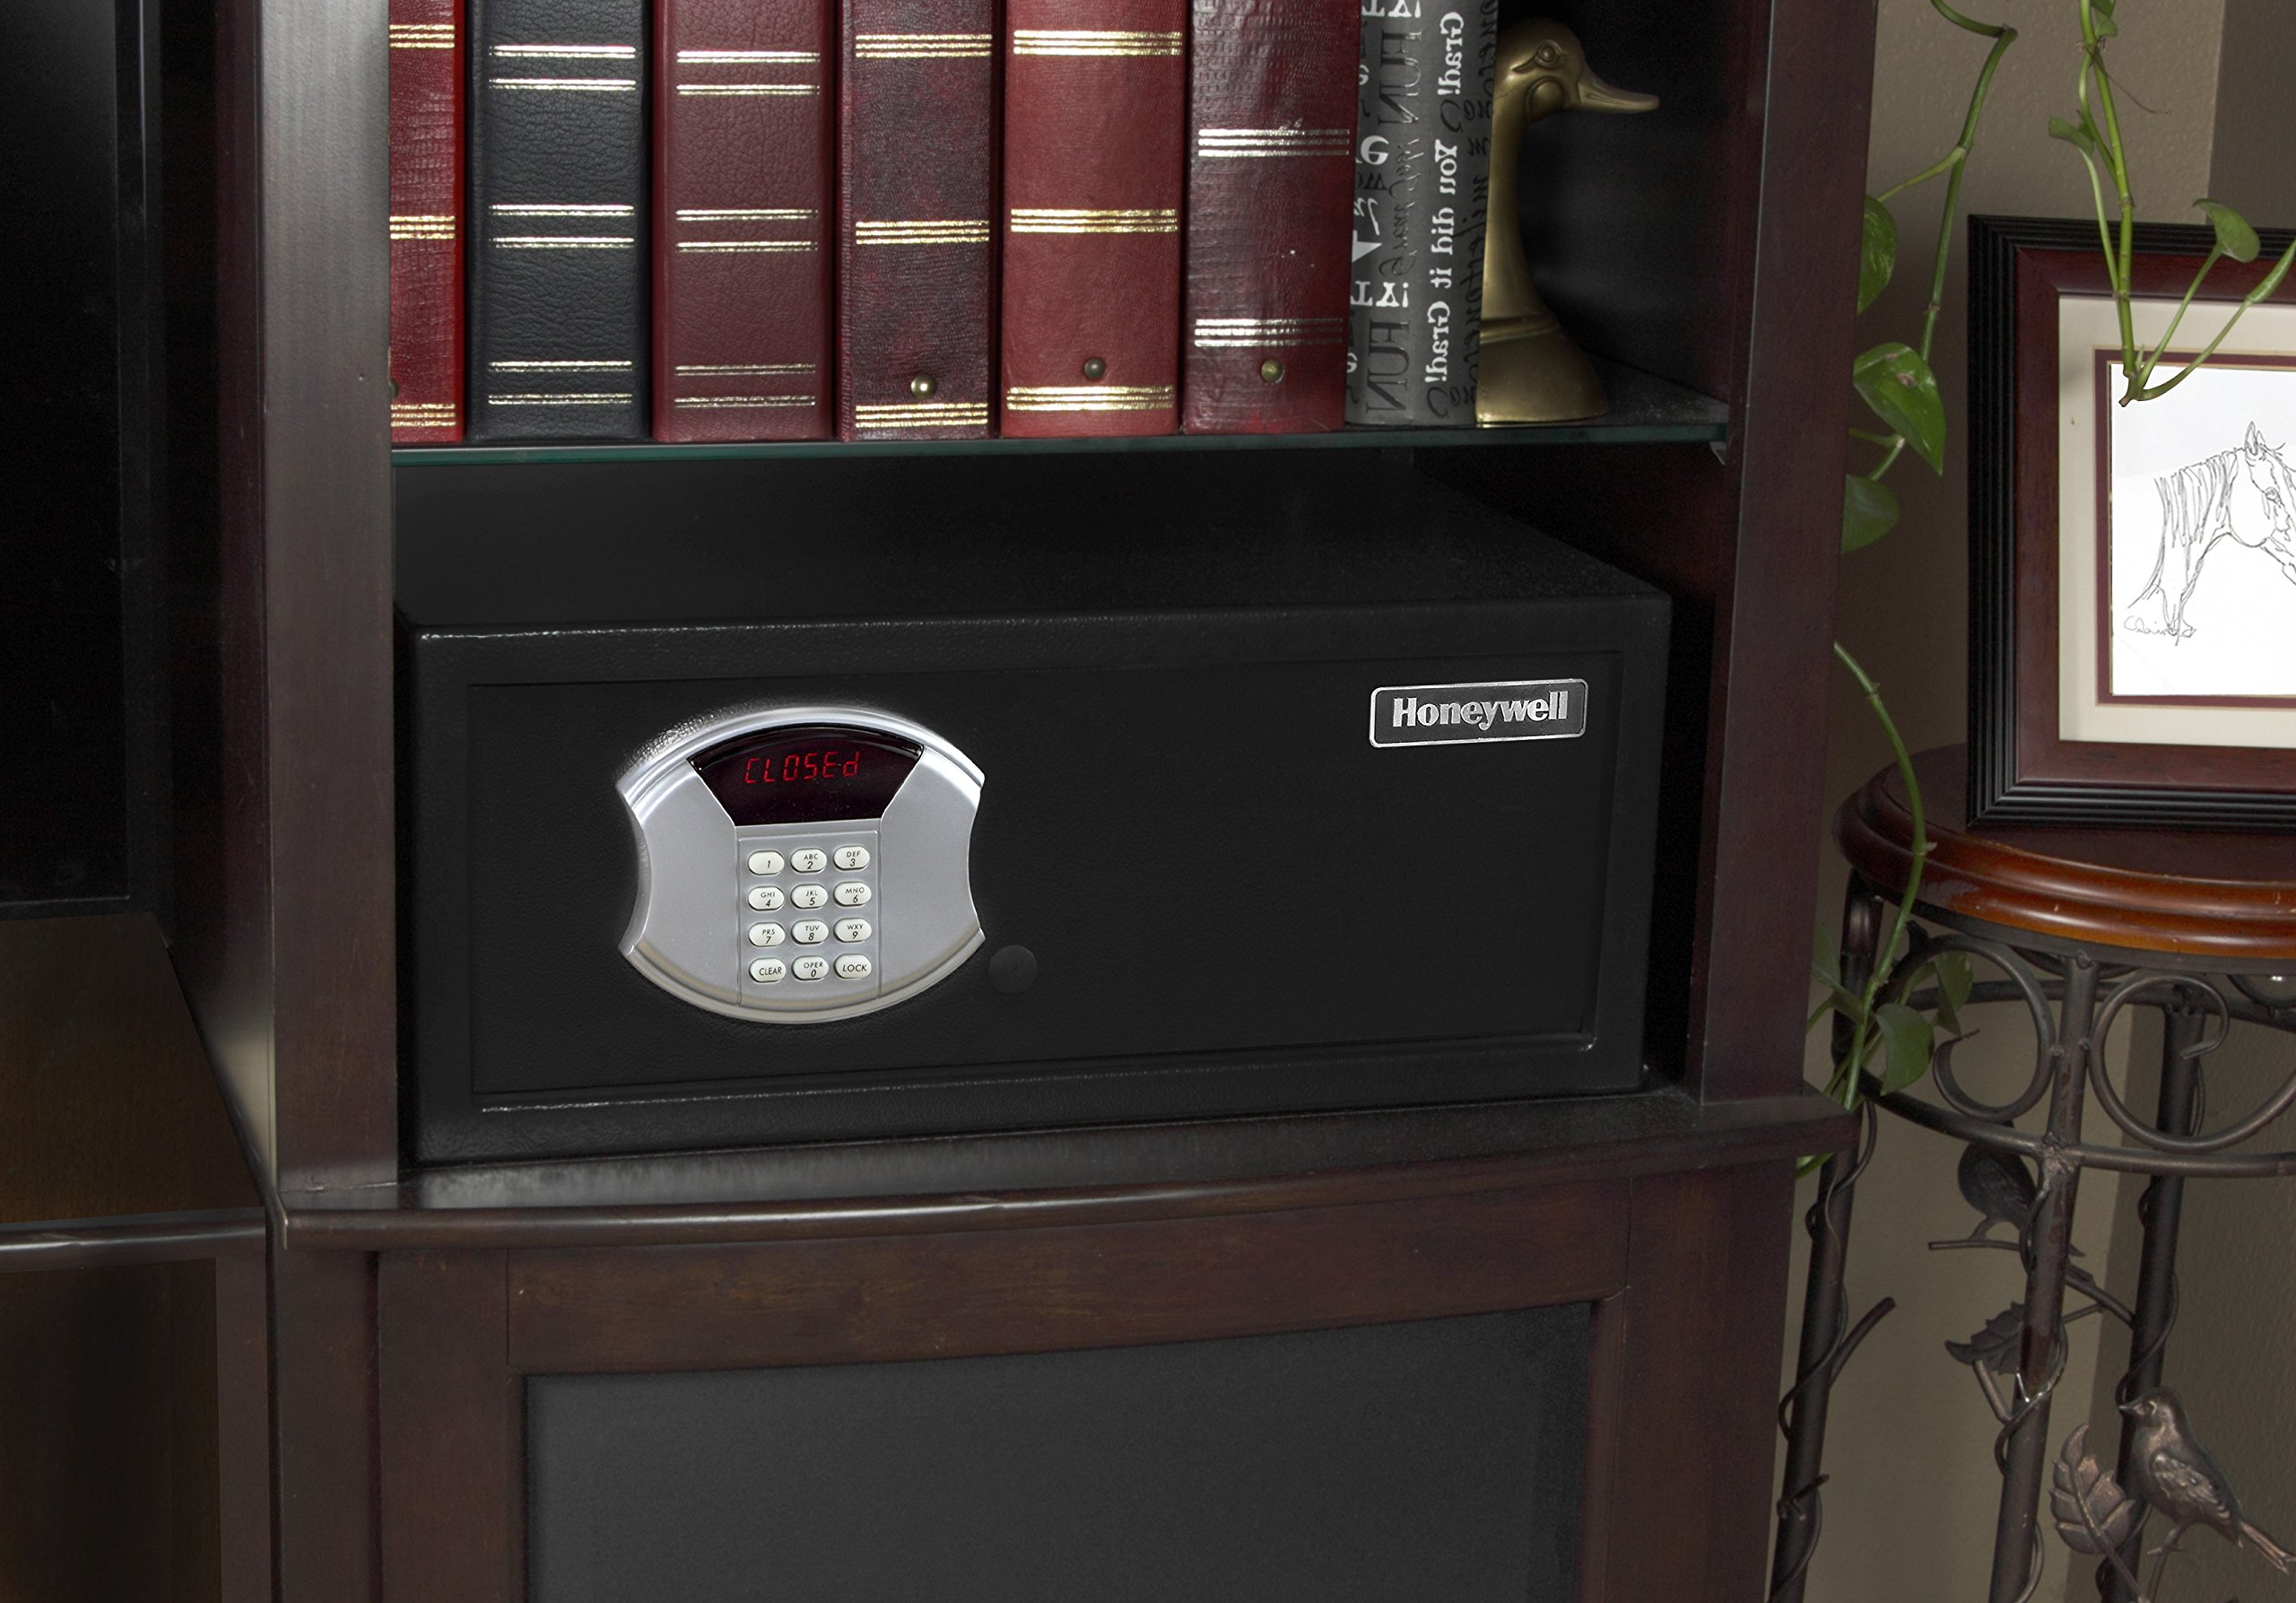 Honeywell 5105DS Low Profile Steel Security Safe with Hotel-Style Digital Lock, 1.10-Cubic Feet, Black by Honeywell Safes & Door Locks (Image #6)